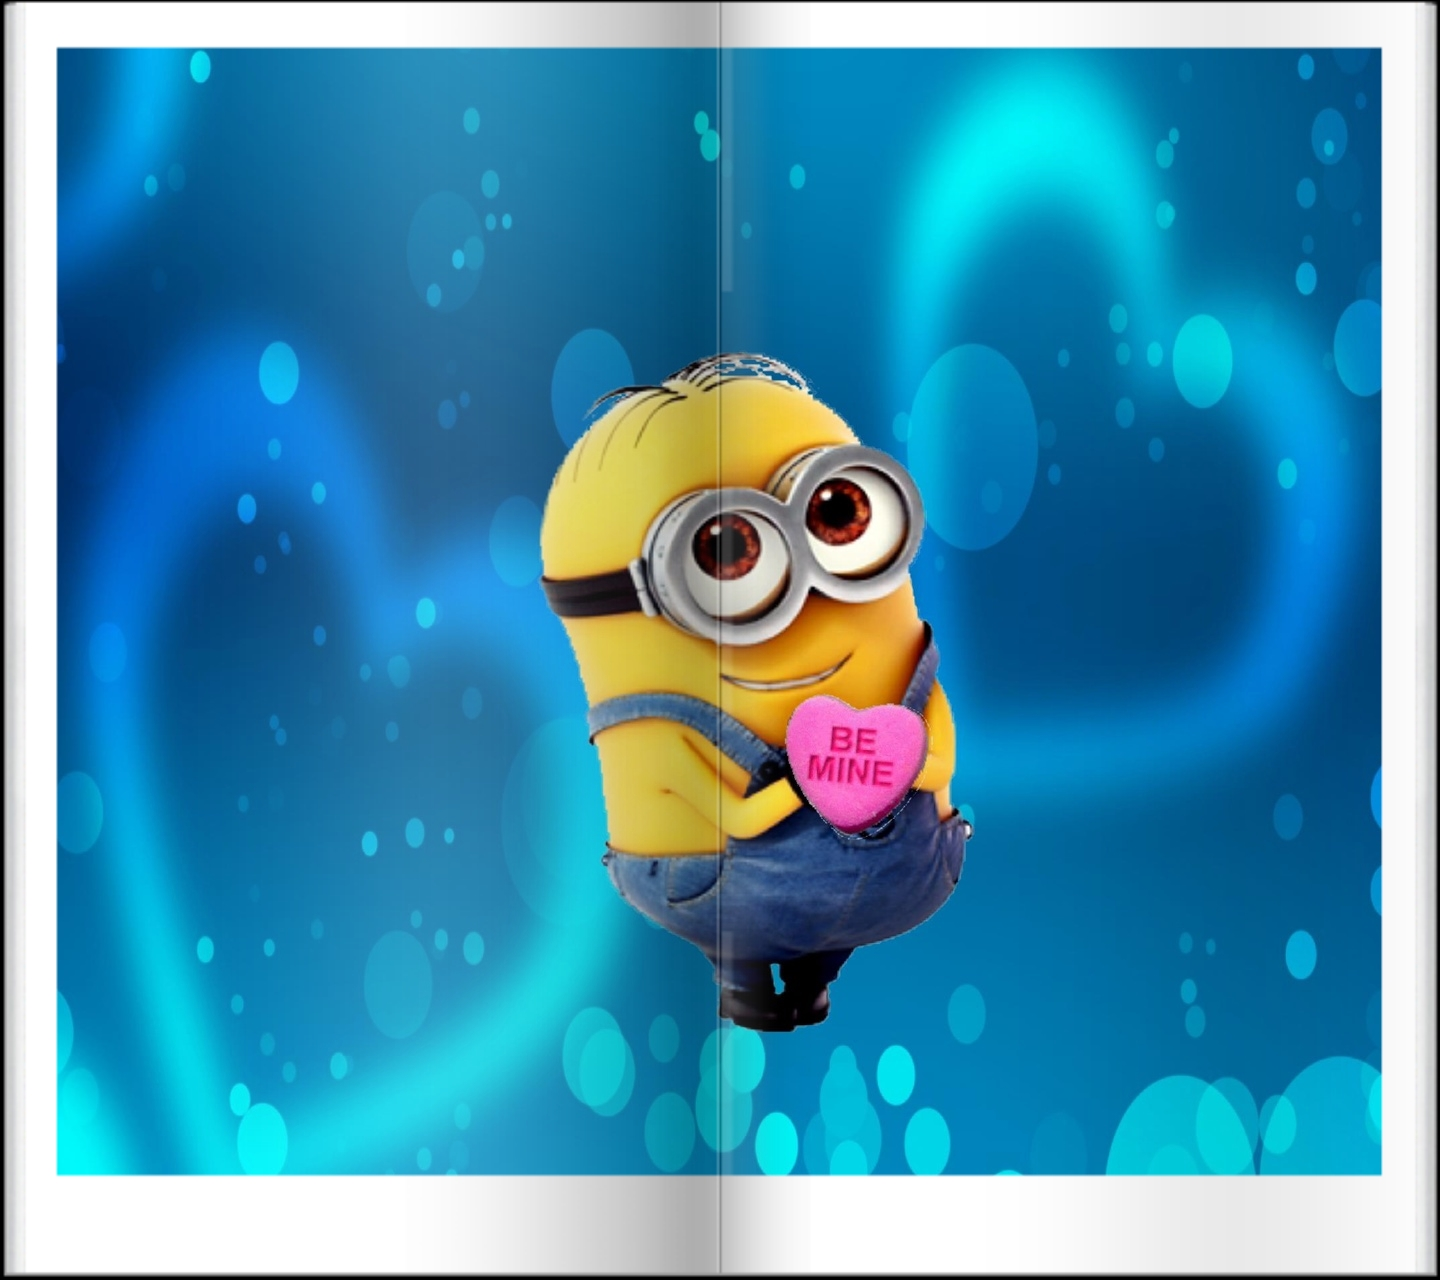 minions-photos-and-desktop-backgrounds-up-to-K-wallpaper-wpc5807247